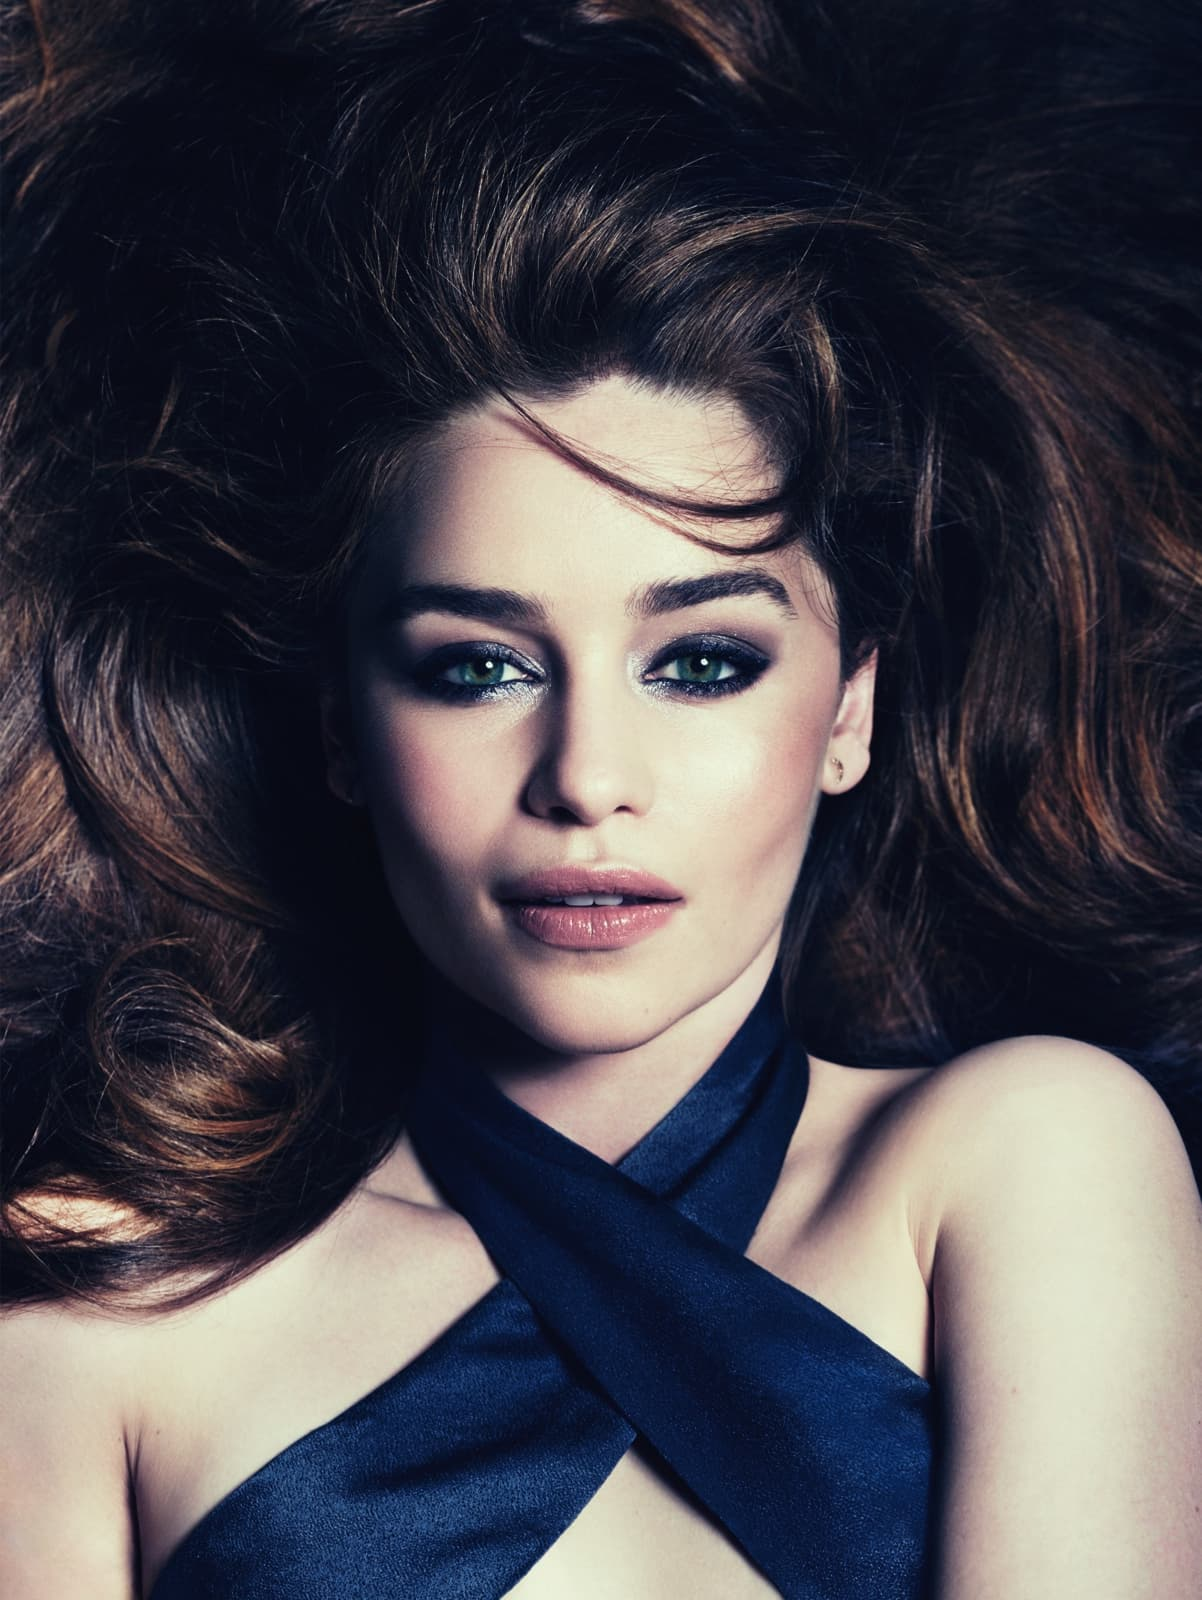 15 Emilia Clarke Wallpapers Hd High Quality Resolution